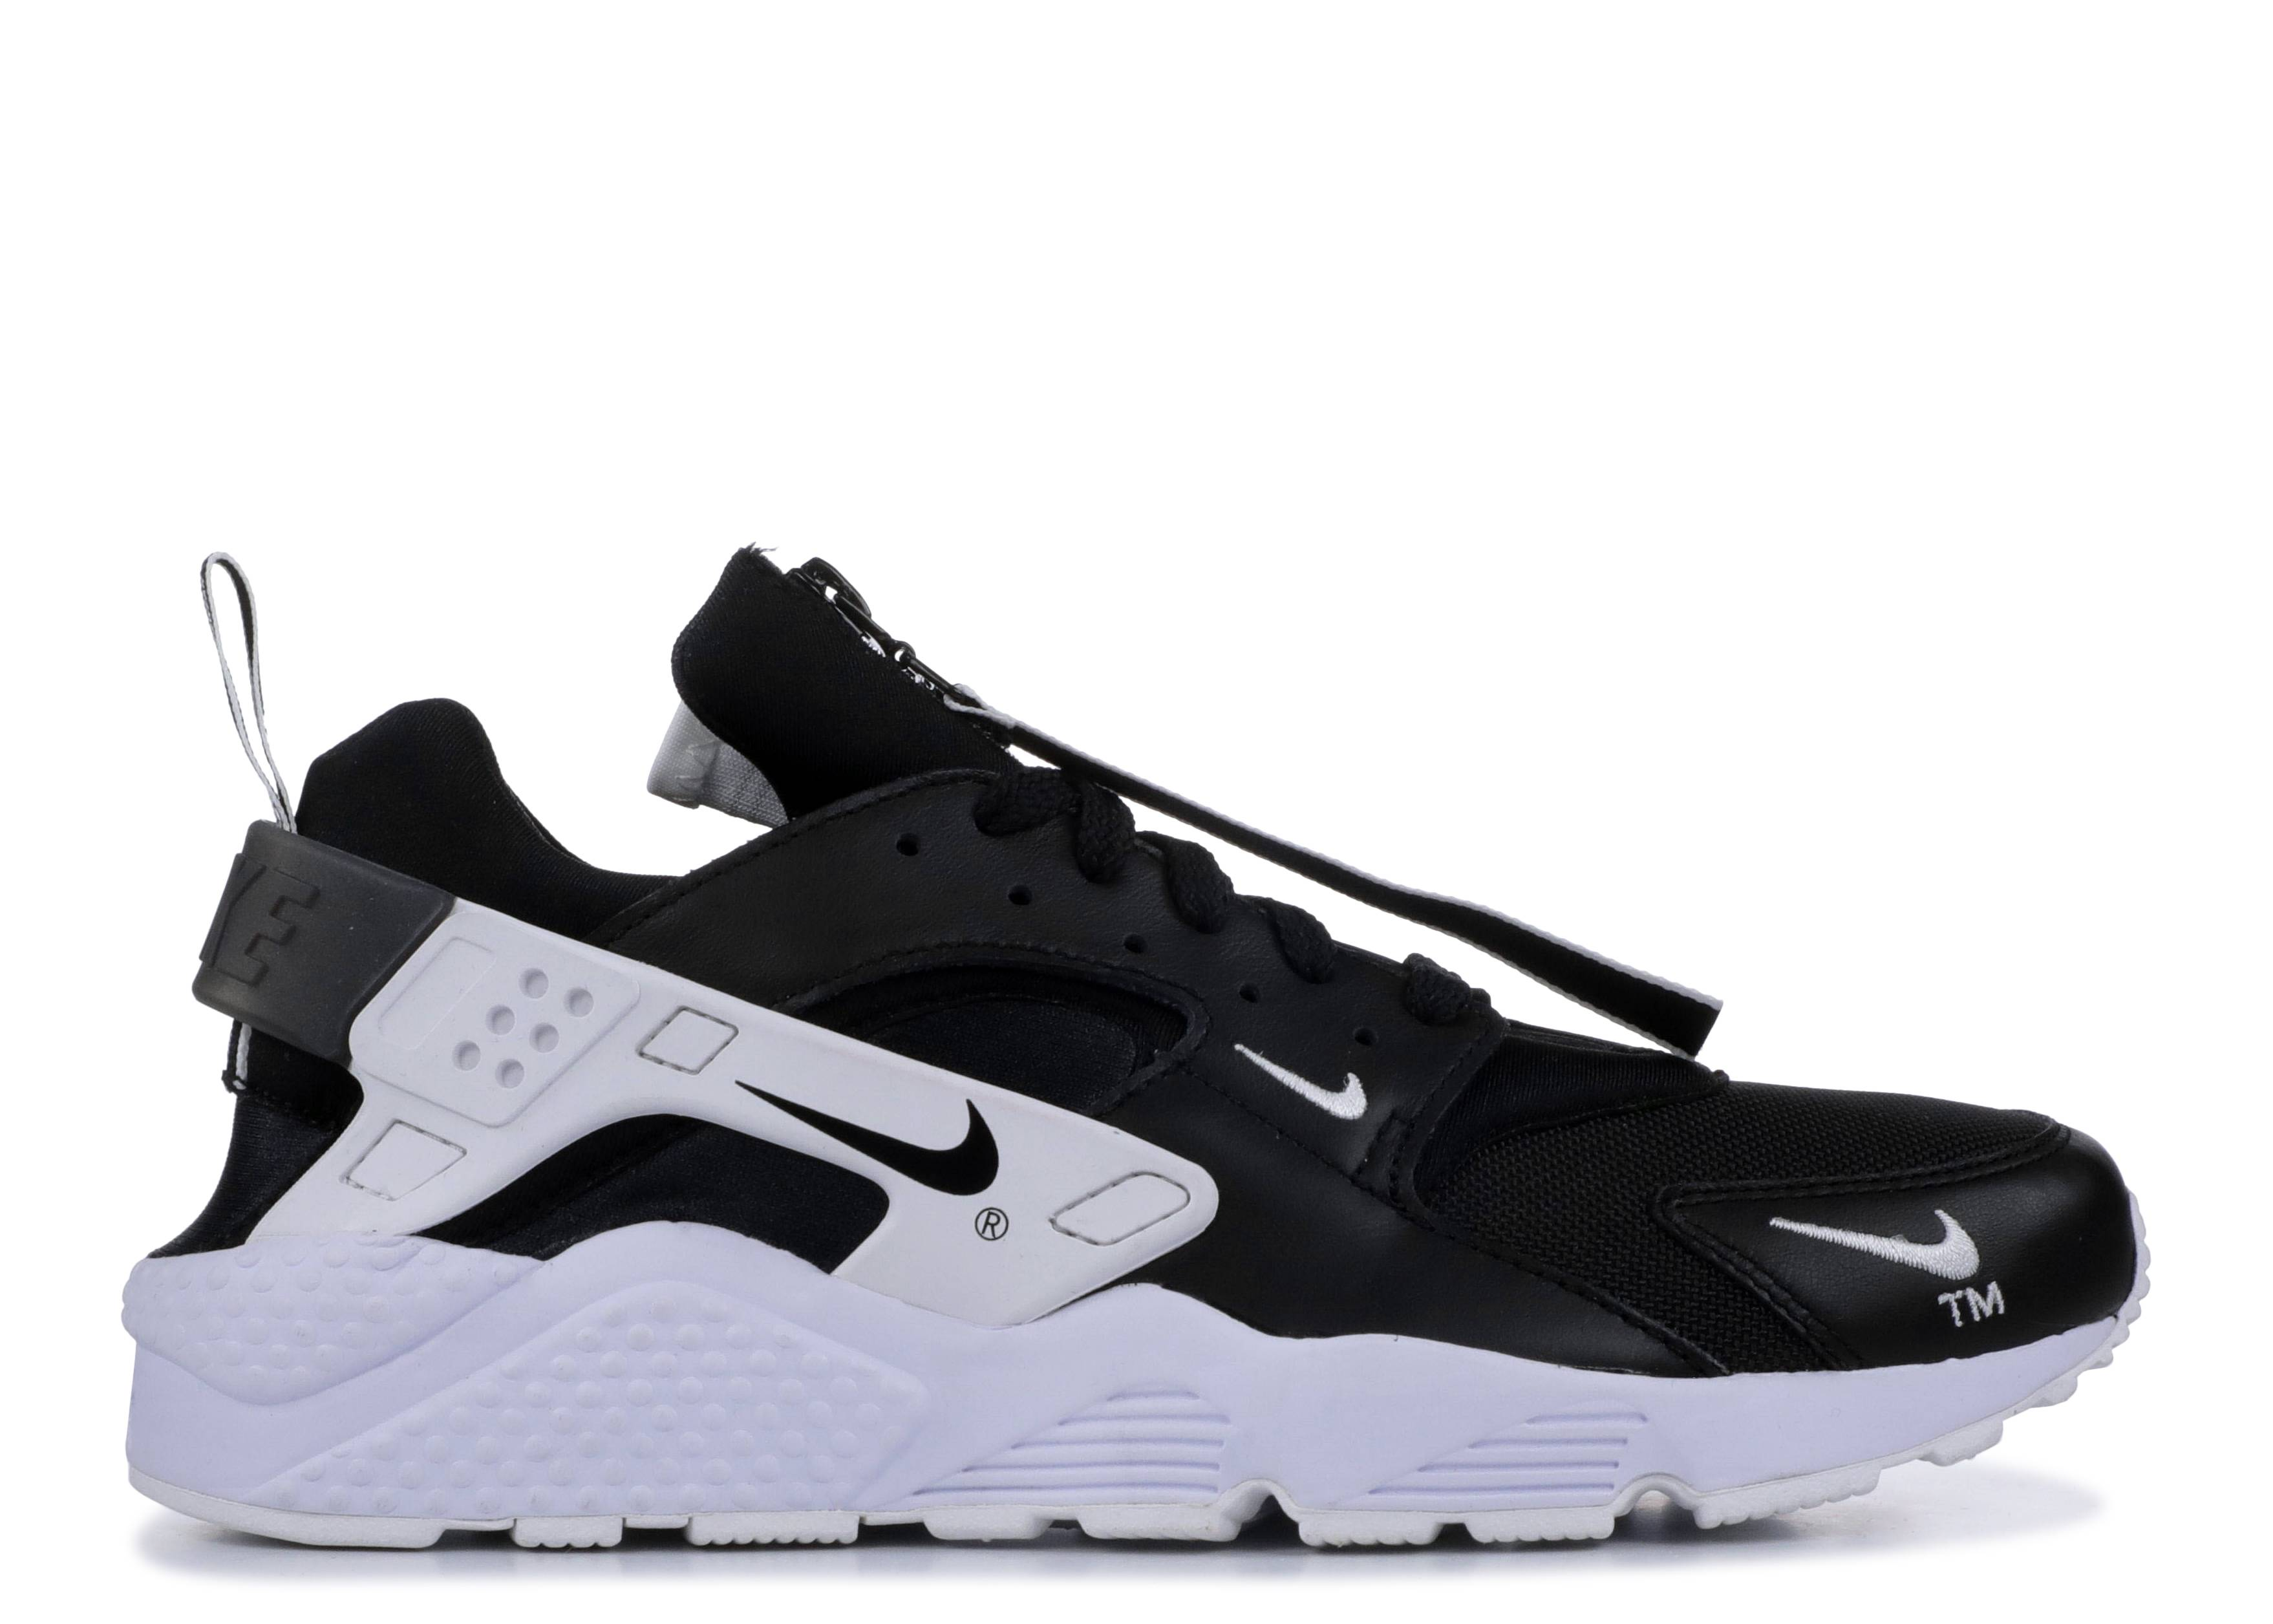 73614744faa6 Nike Air Huarache Run Prm Zip - Nike - ar0785 001 - black black ...